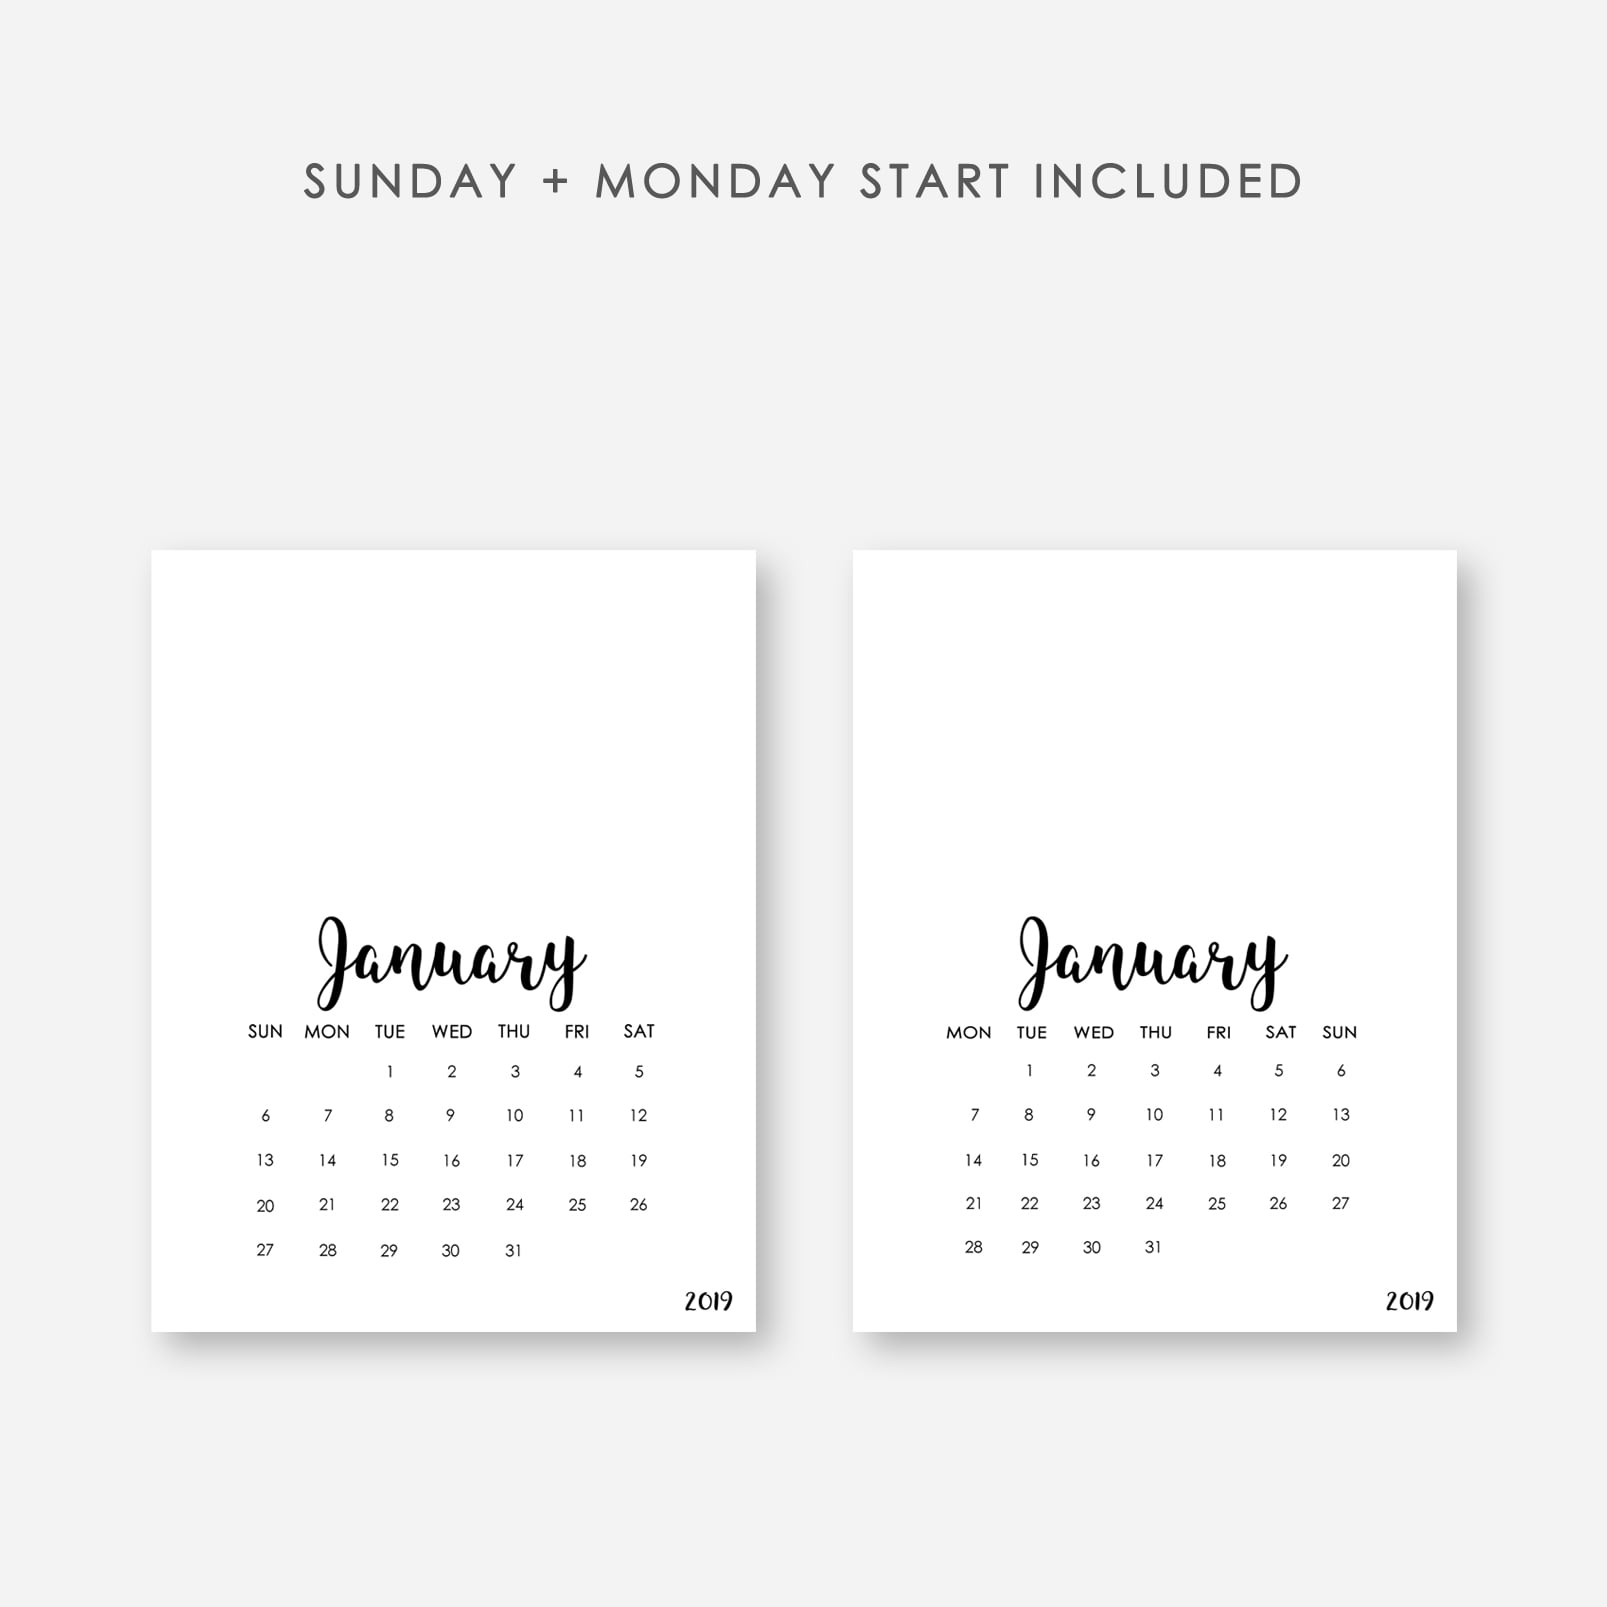 2020 Printable Calendar Template - $9 ONLY - Display sunday monday start copy